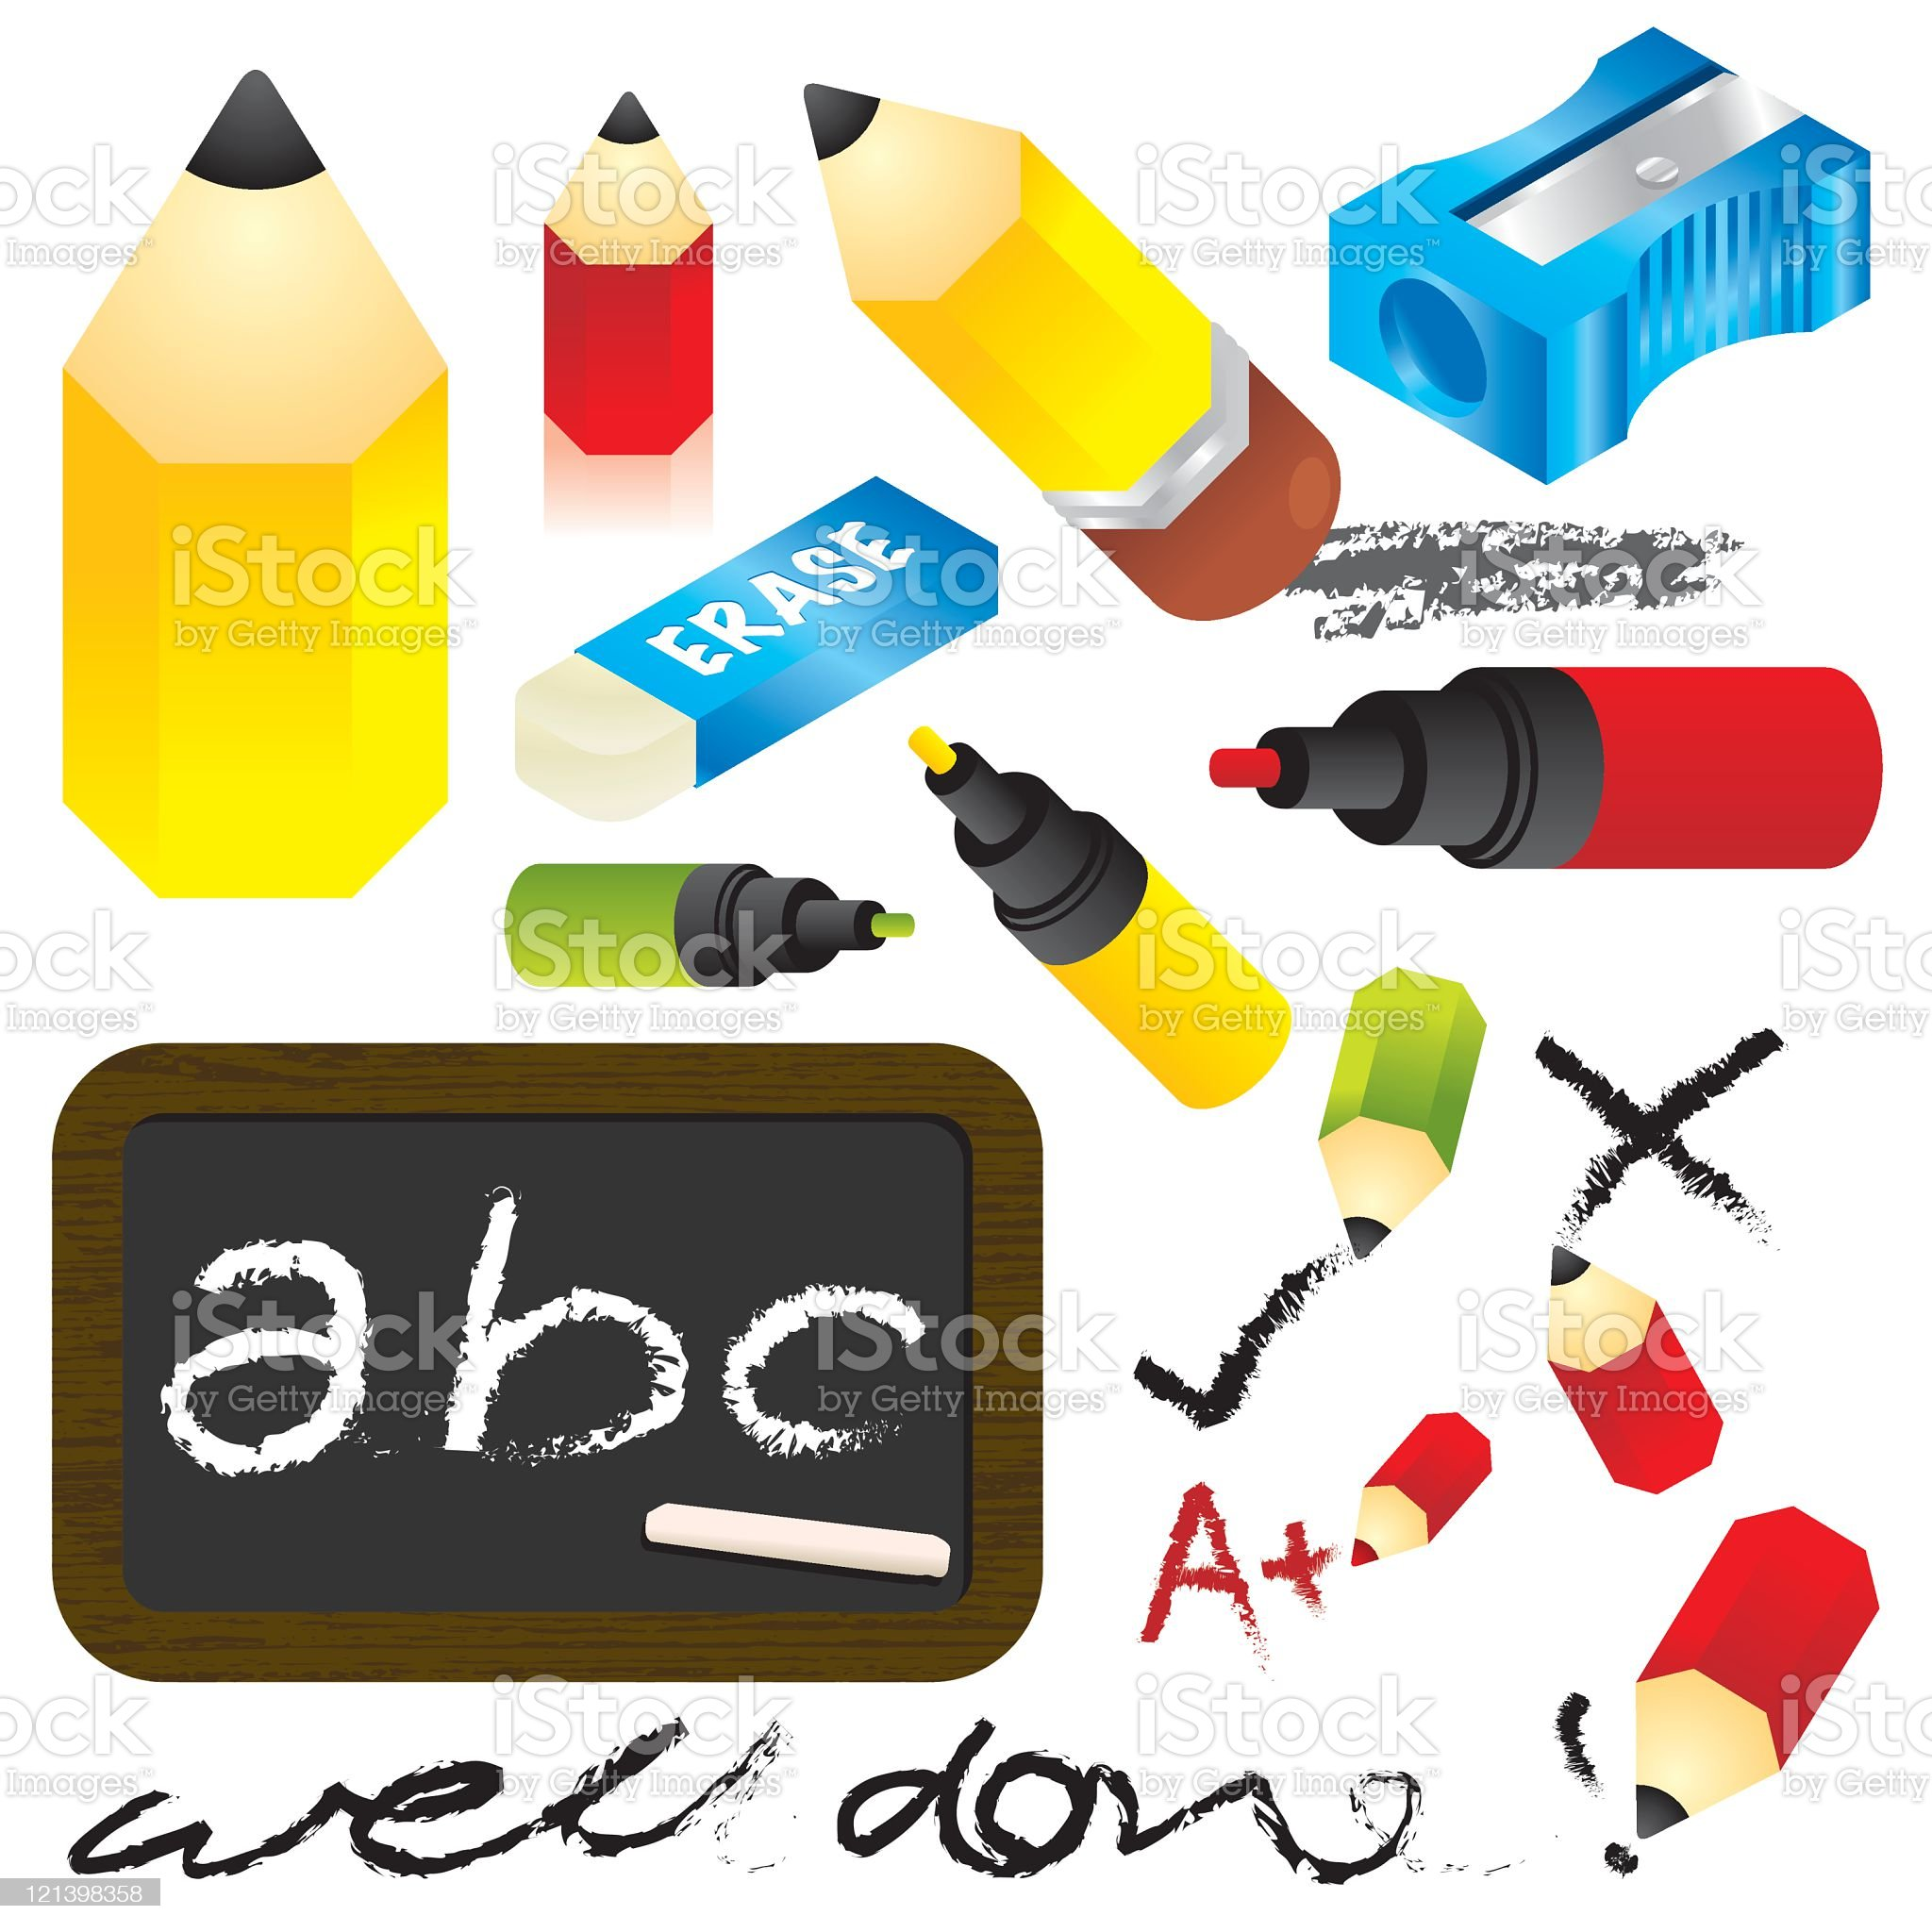 Pencils and stuff royalty-free stock vector art